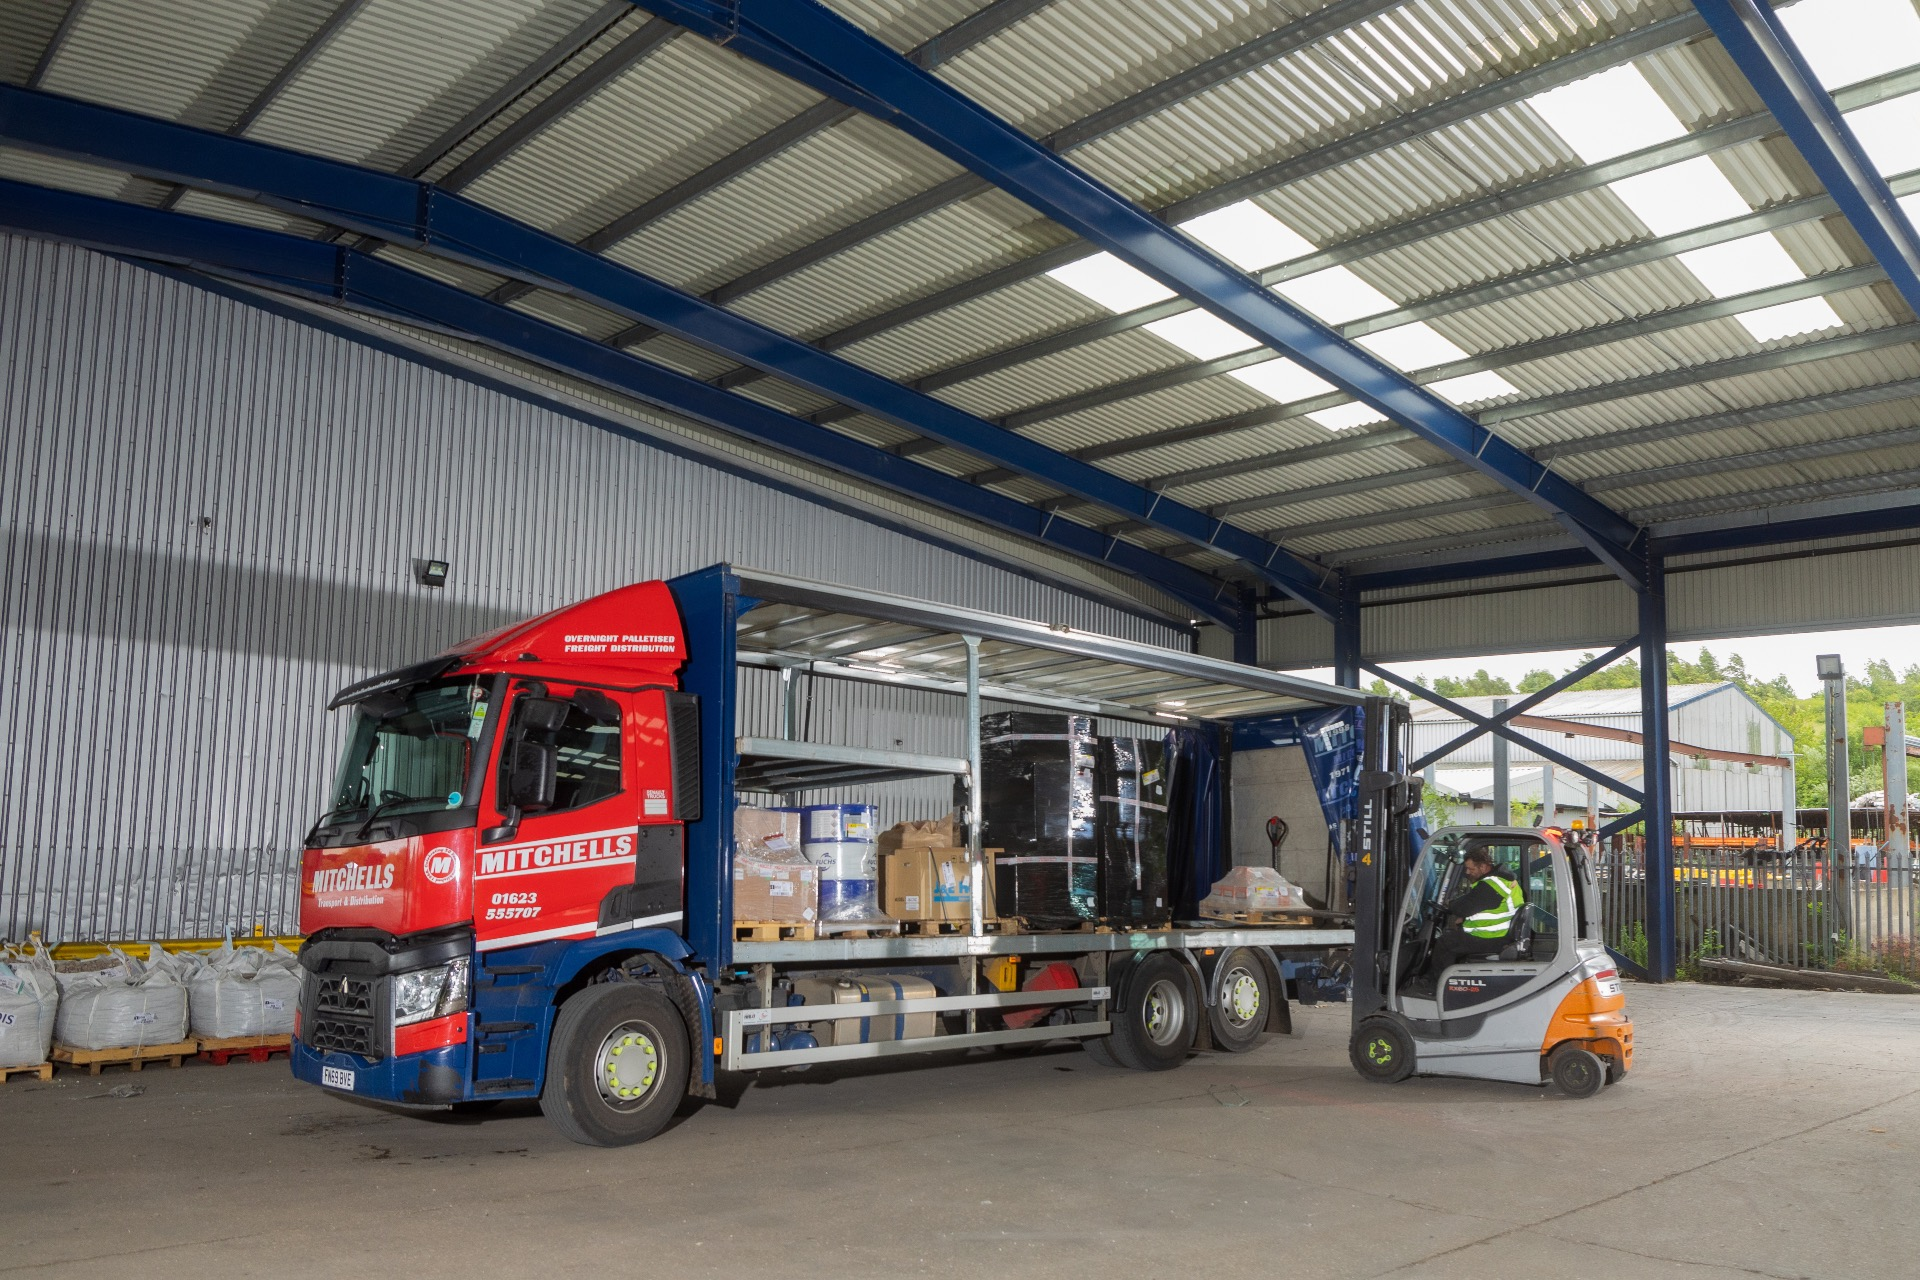 Mitchells lorry being loaded with pallets. A range of vacancies available.